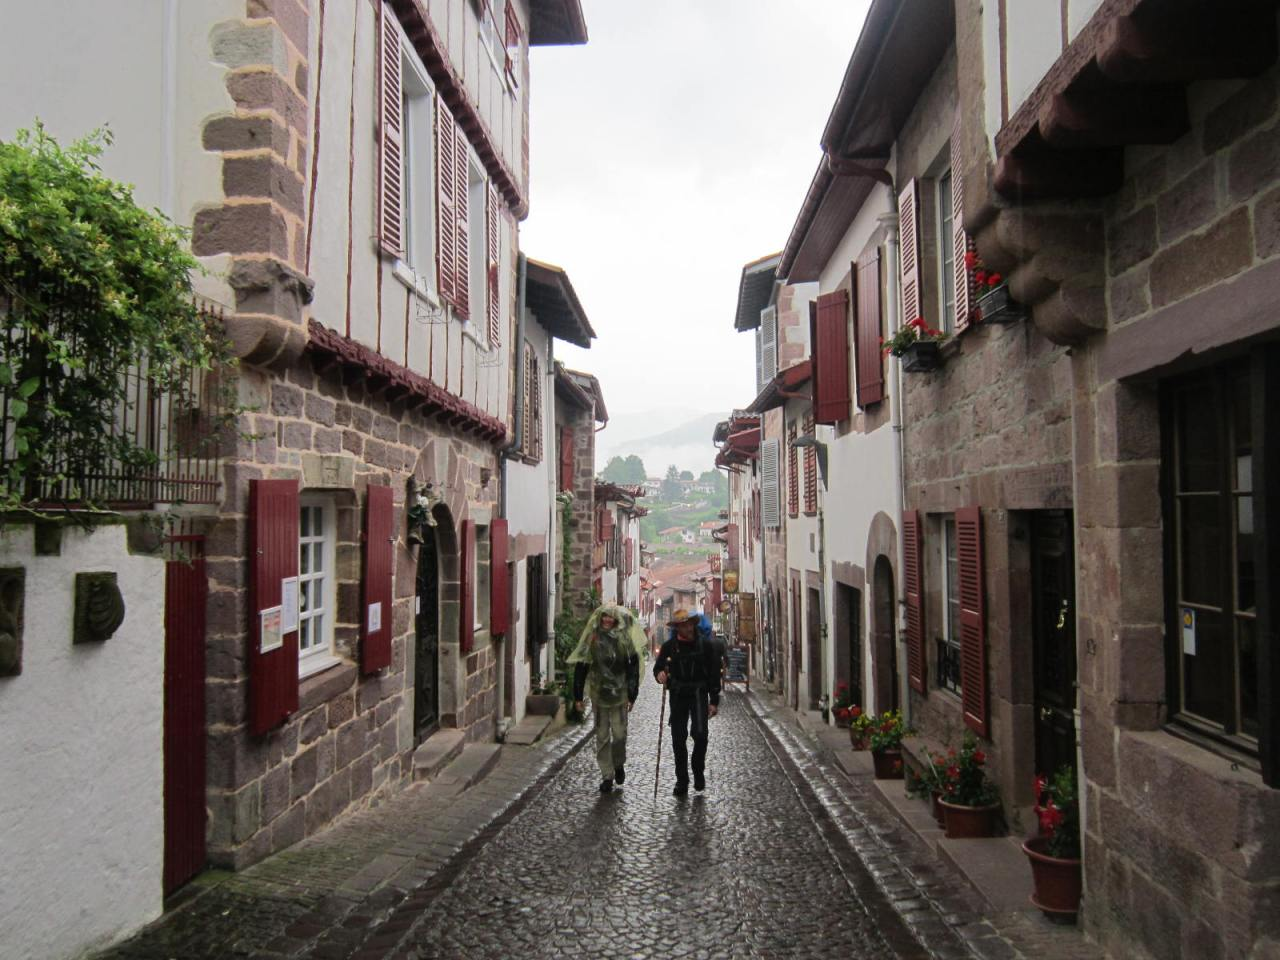 St jean pied de port weather el camino de santiago de - Weather forecast st jean pied de port france ...